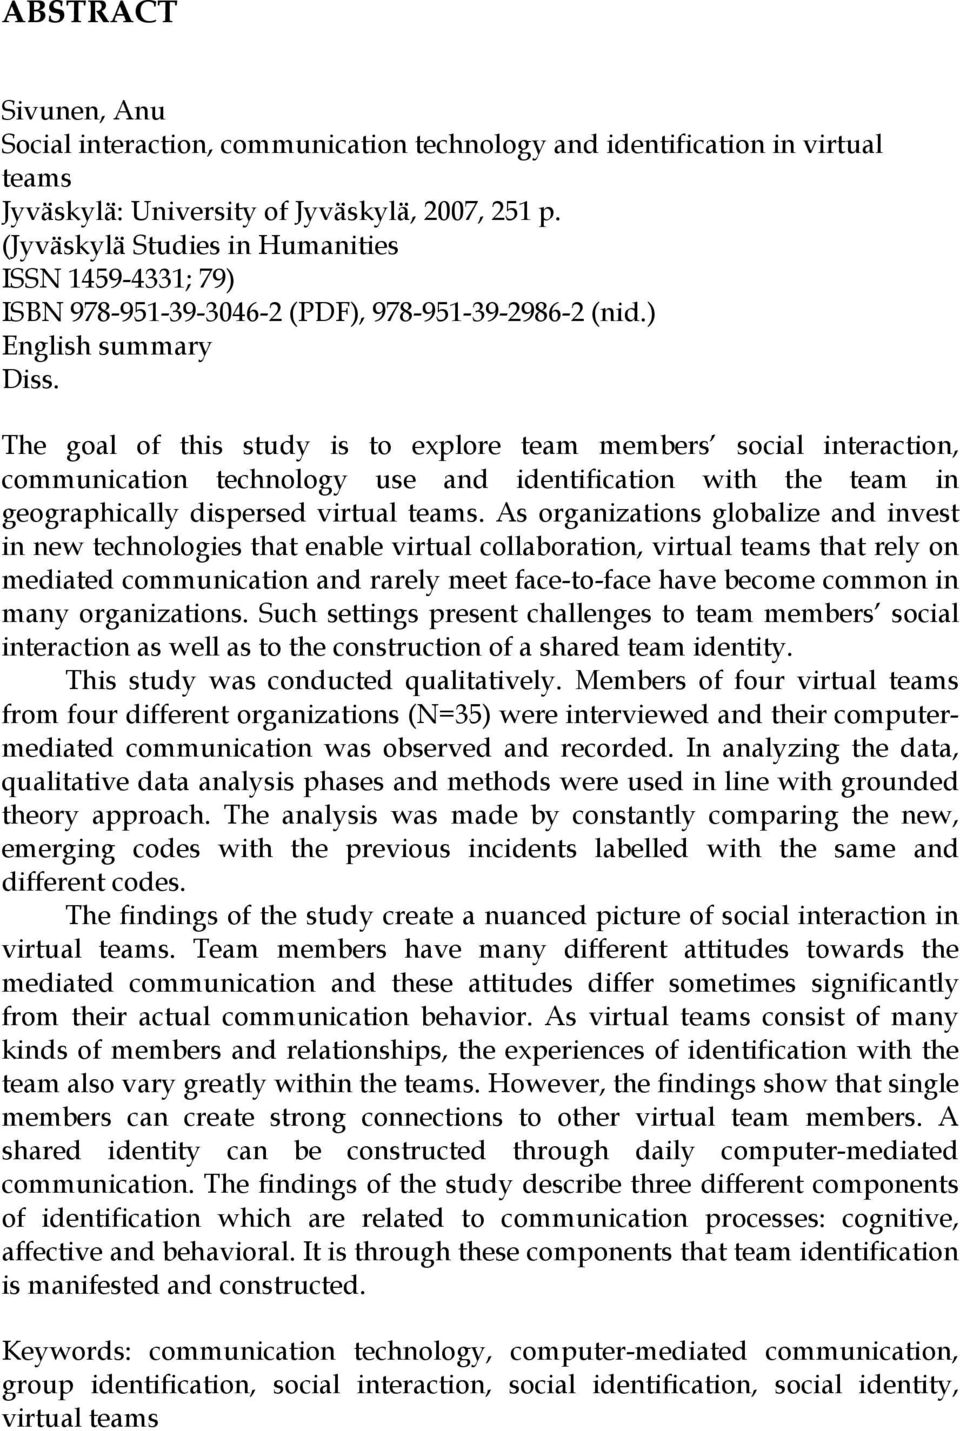 The goal of this study is to explore team members social interaction, communication technology use and identification with the team in geographically dispersed virtual teams.